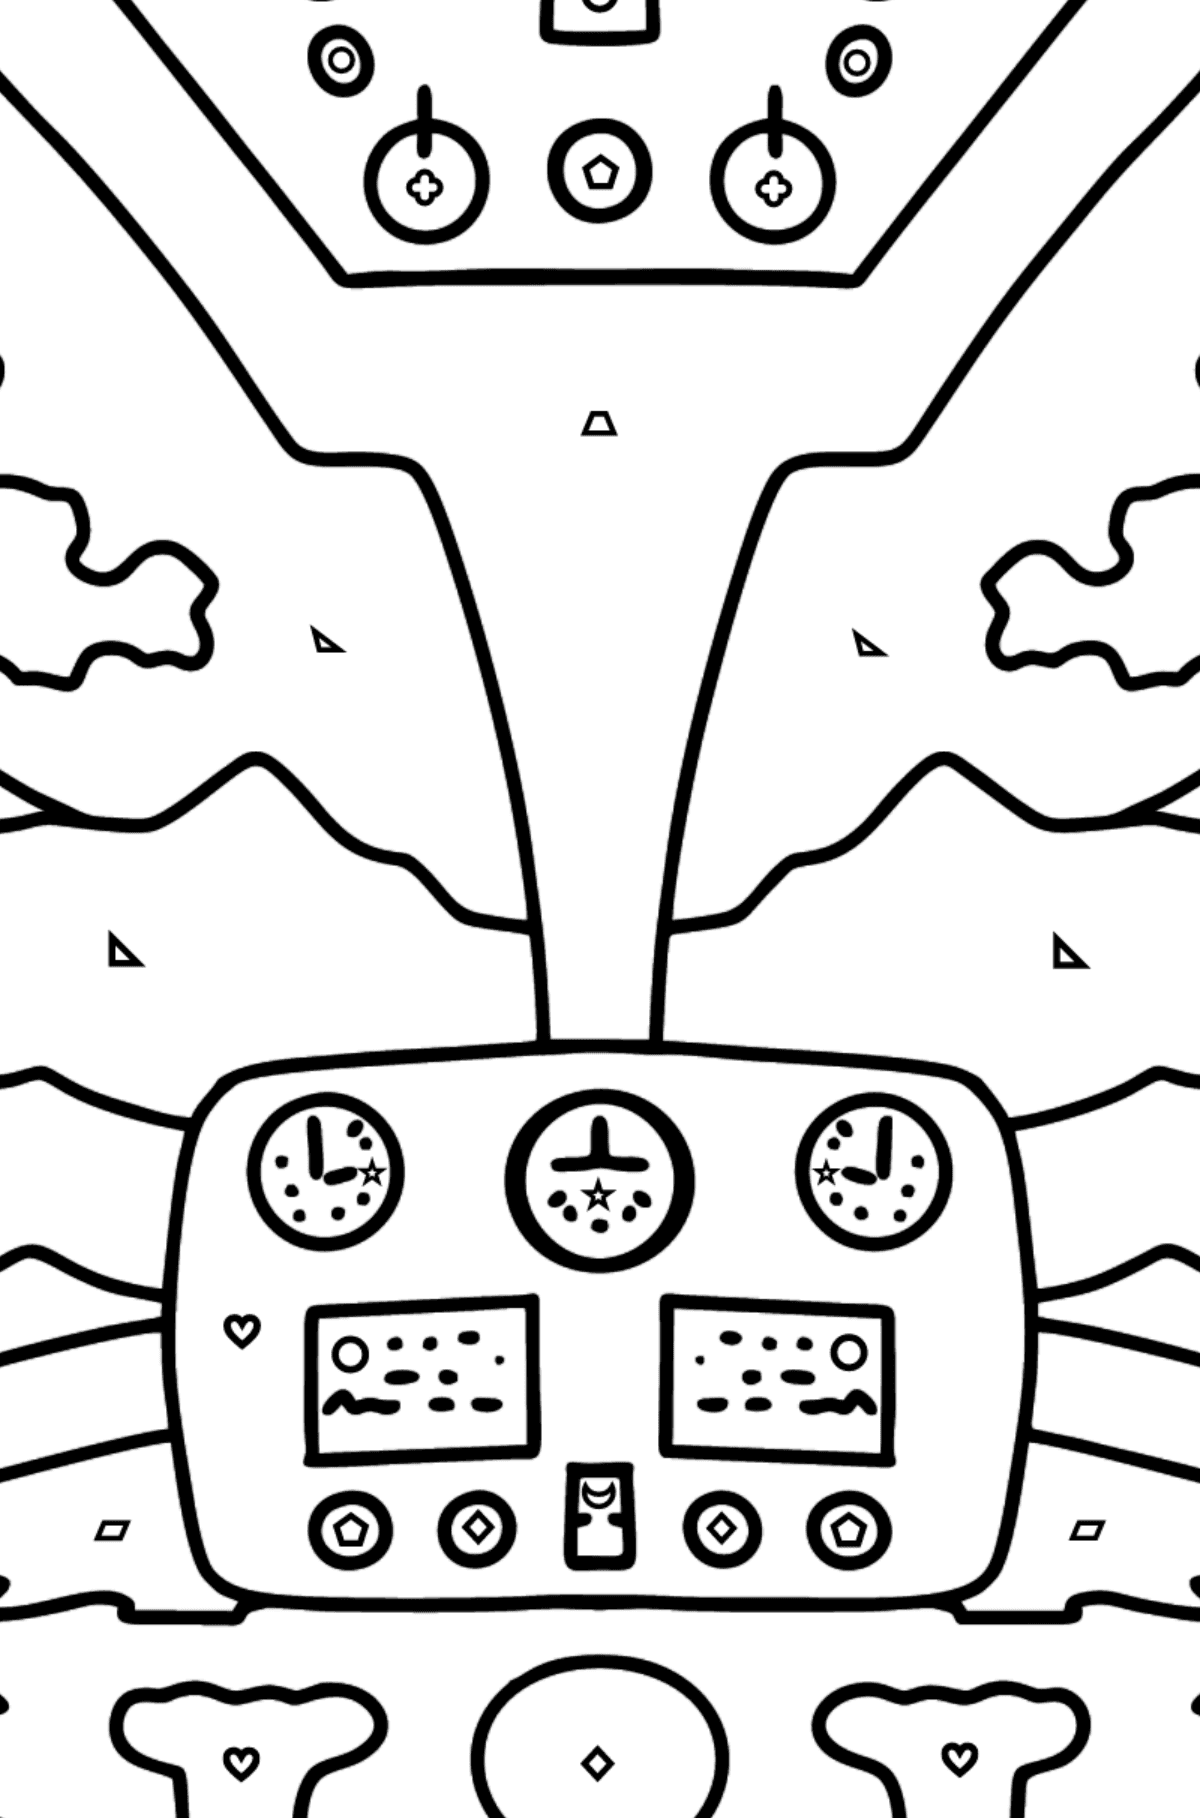 Helicopter Wheel coloring page - Coloring by Geometric Shapes for Kids